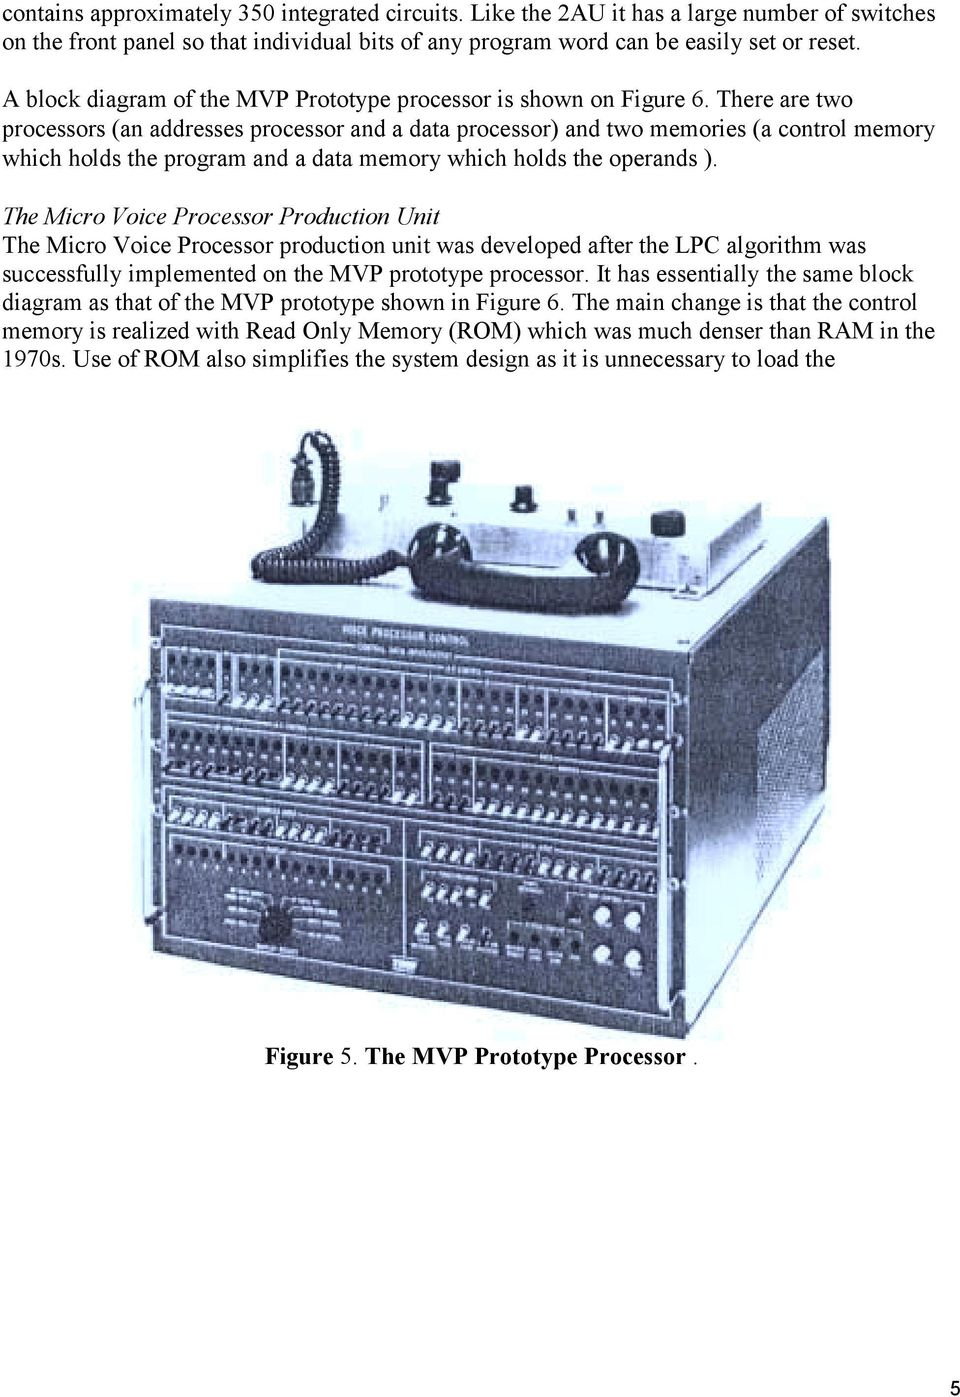 There are two processors (an addresses processor and a data processor) and two memories (a control memory which holds the program and a data memory which holds the operands ).